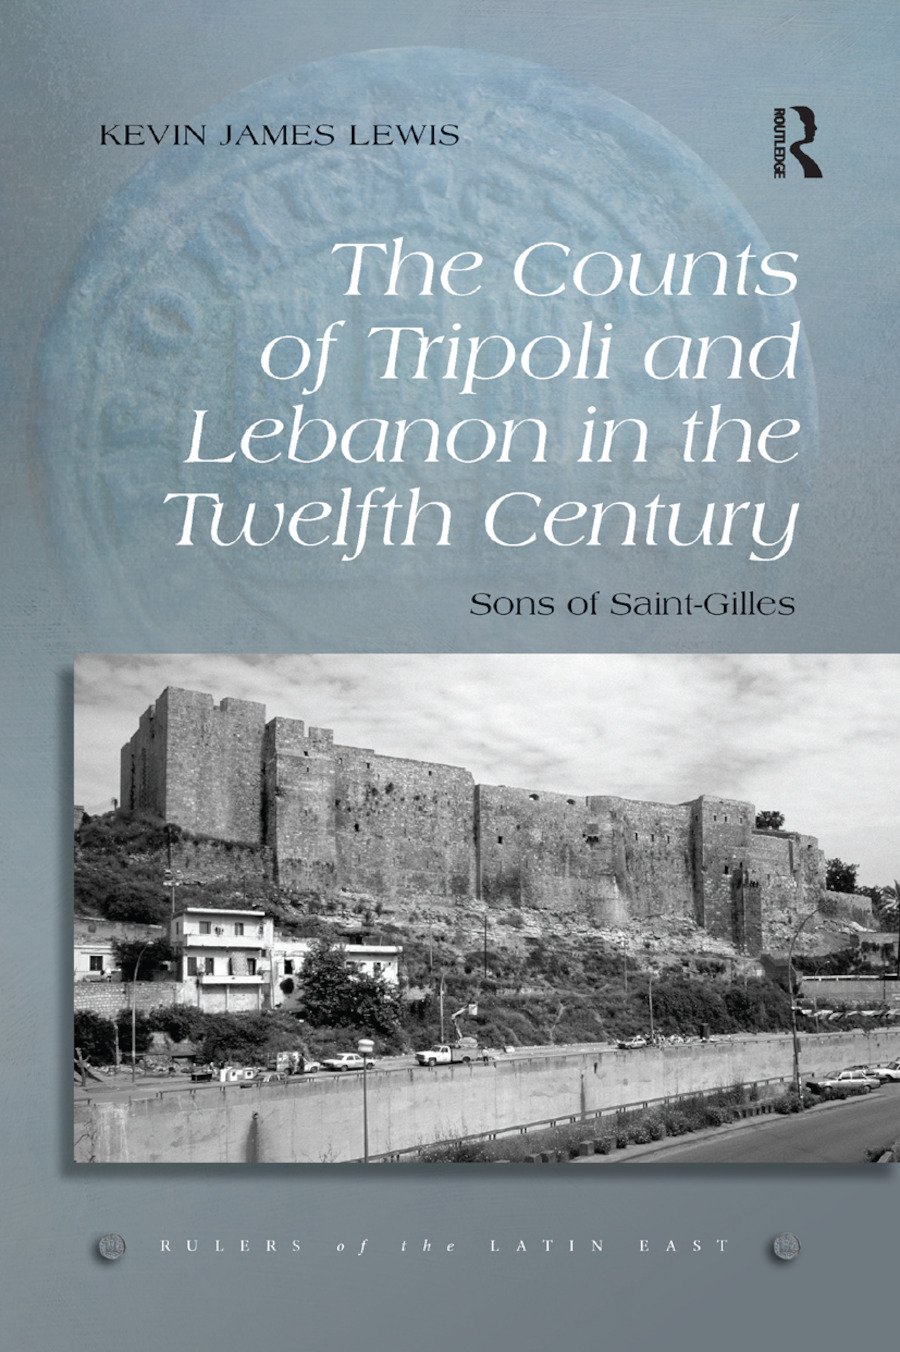 The Counts of Tripoli and Lebanon in the Twelfth Century: Sons of Saint-Gilles book cover